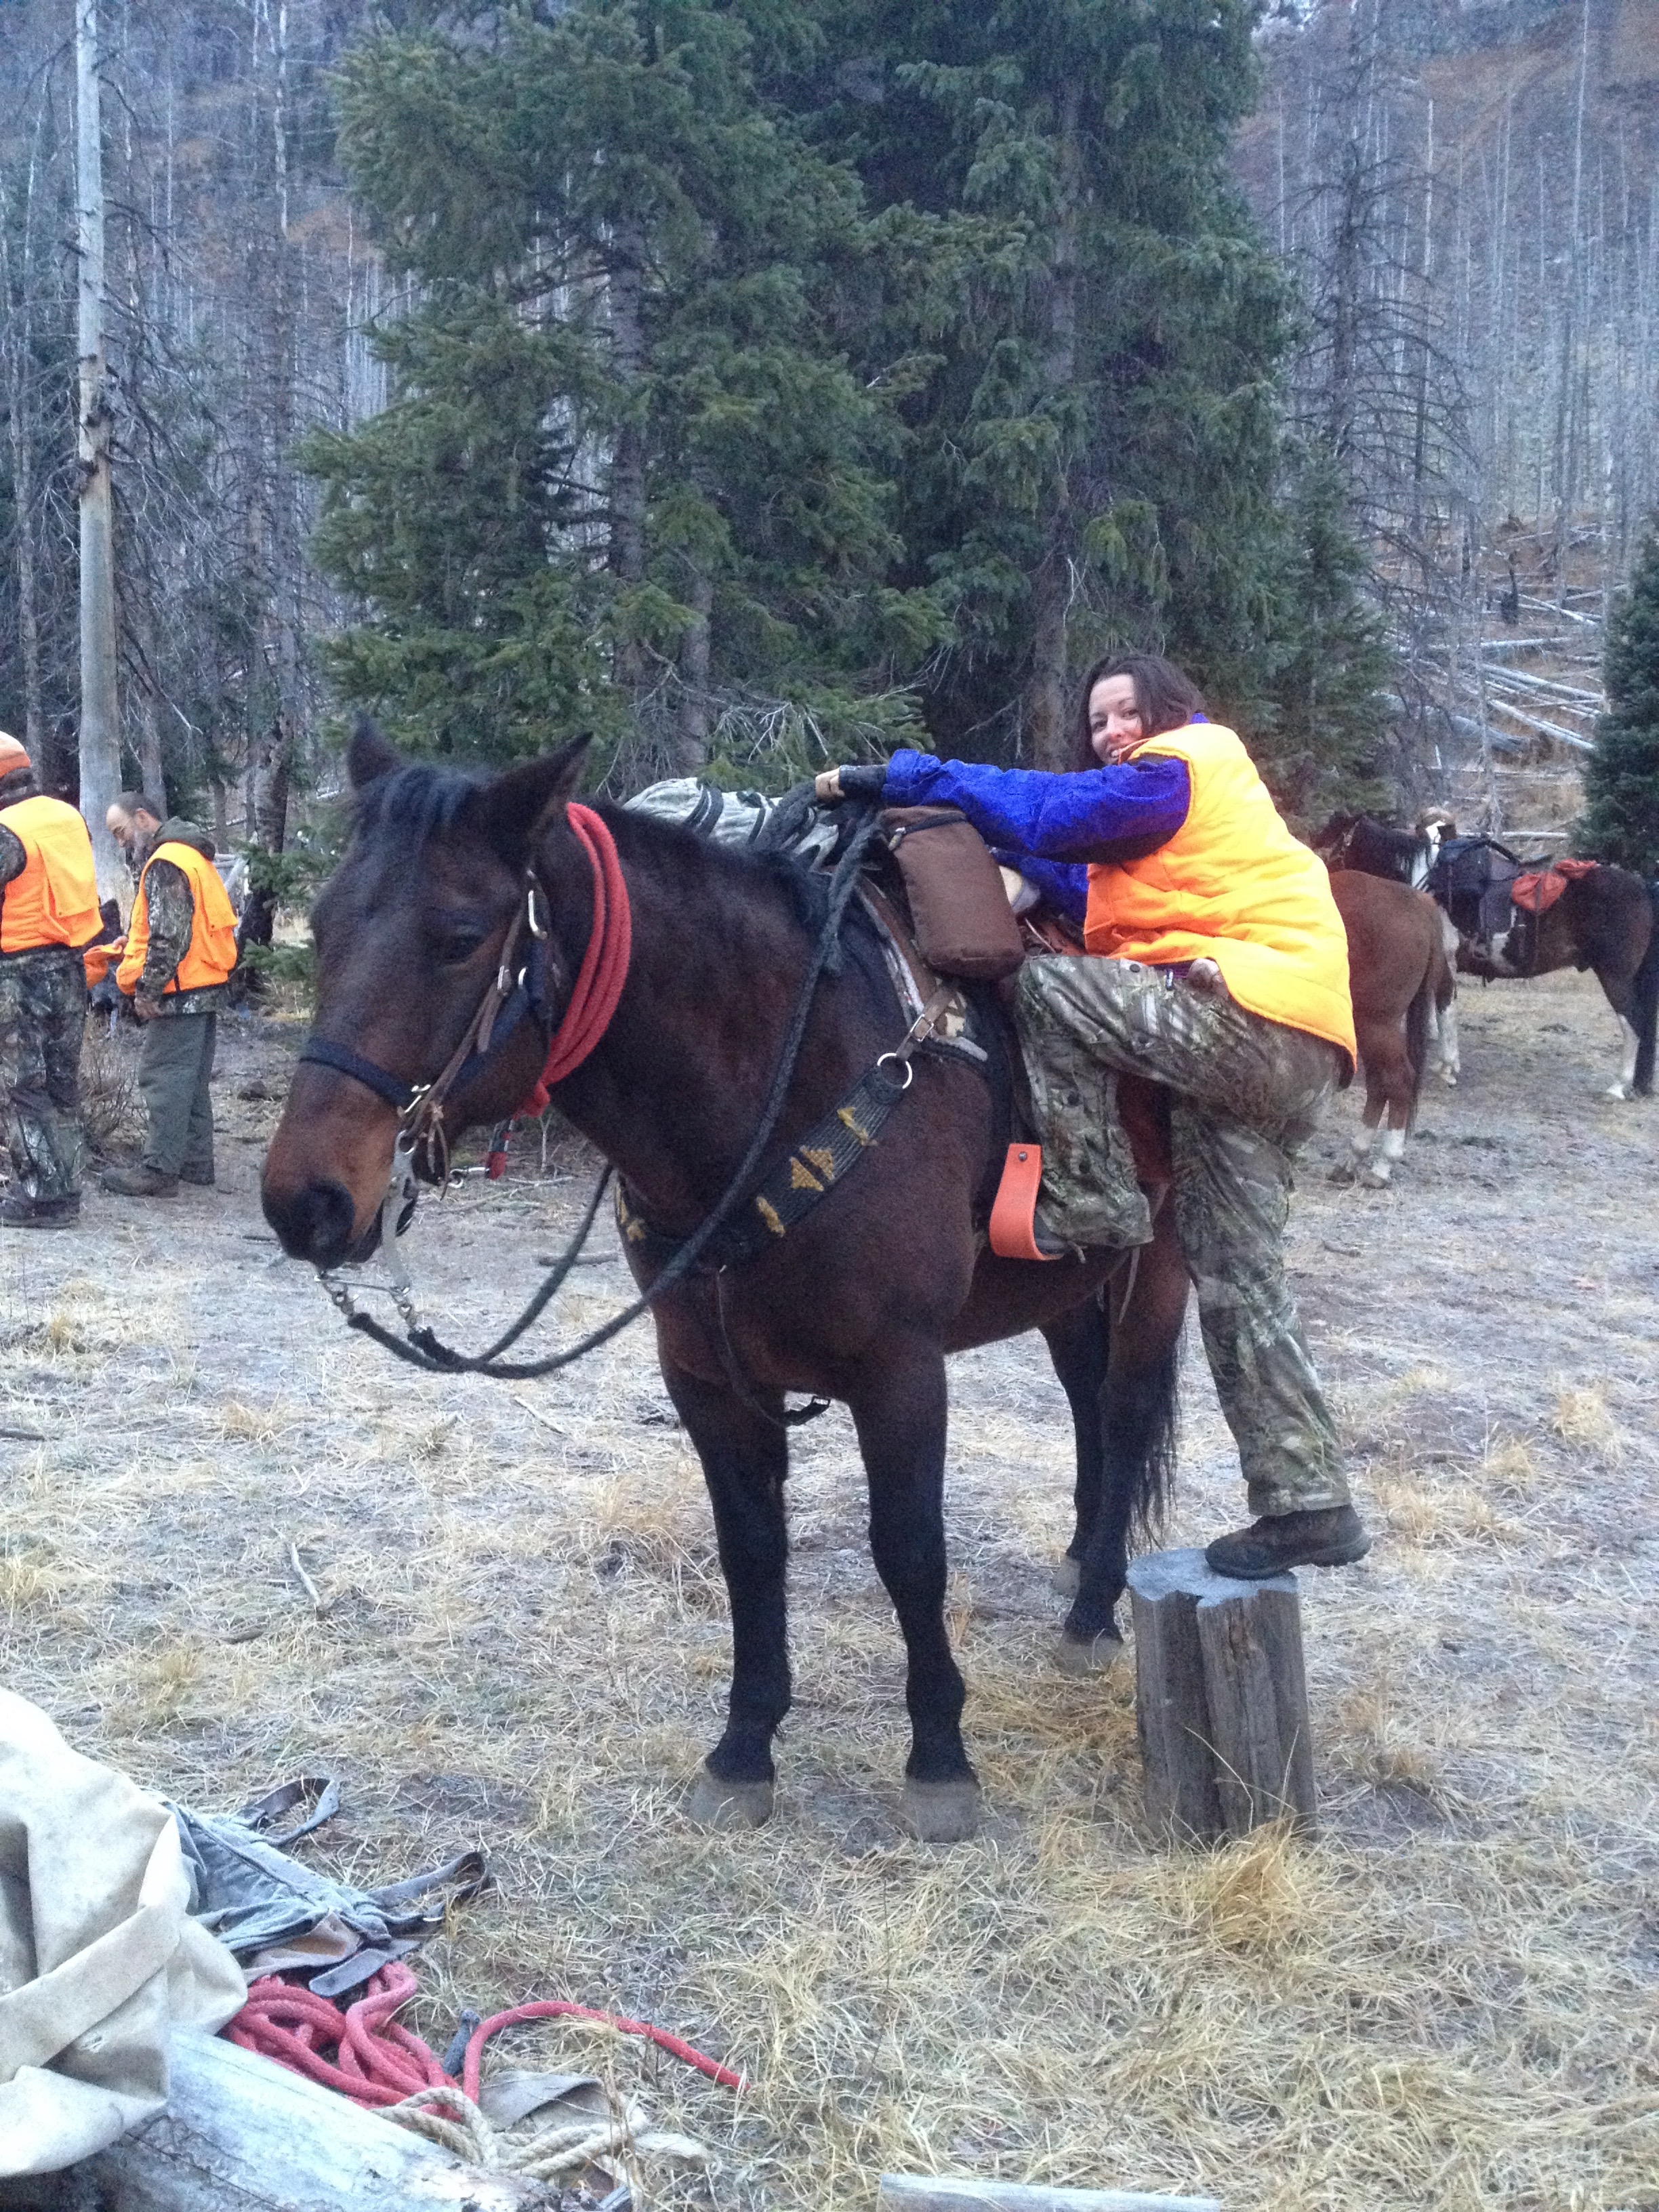 This is Woody. He is a very tall horse that required me finding a stump, rock, helping hand, whatever I could to crawl on his back. He was my mode of transportation for 3 of the 7 days hunting and camping. He delivered me across many miles and crazy switchbacks I just pretended didn't exist. I requested a Shetland pony for next year.     #woody  #wildernesscamping   #elkhunting  #kaylinngilstrapphoto   #thewest   #horse